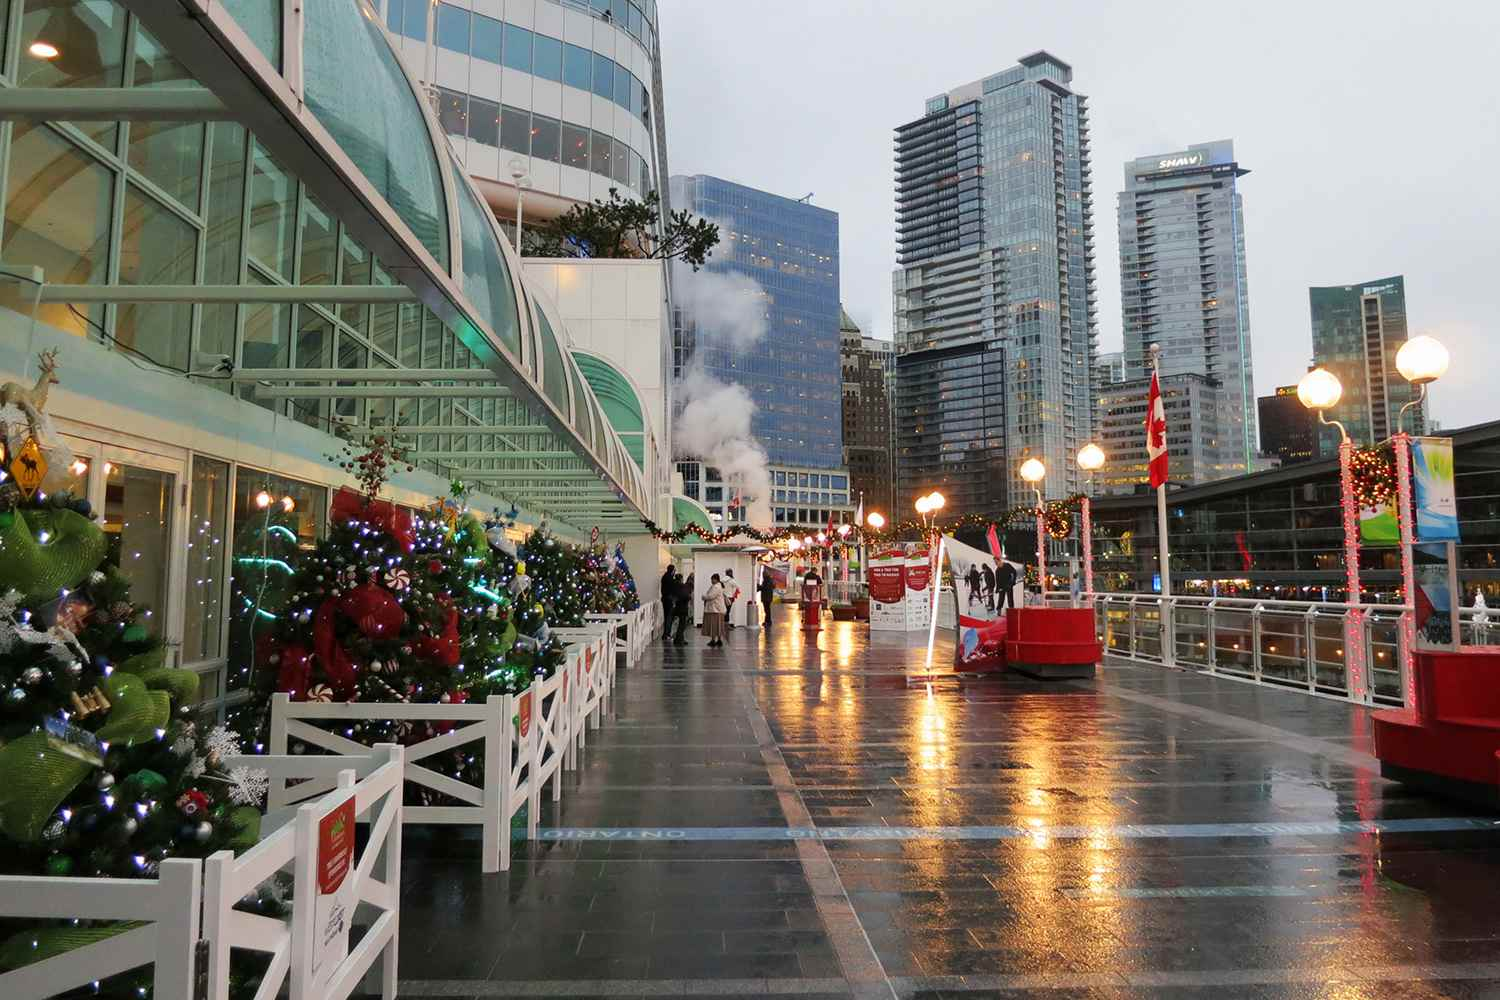 Christmas at Canada Place